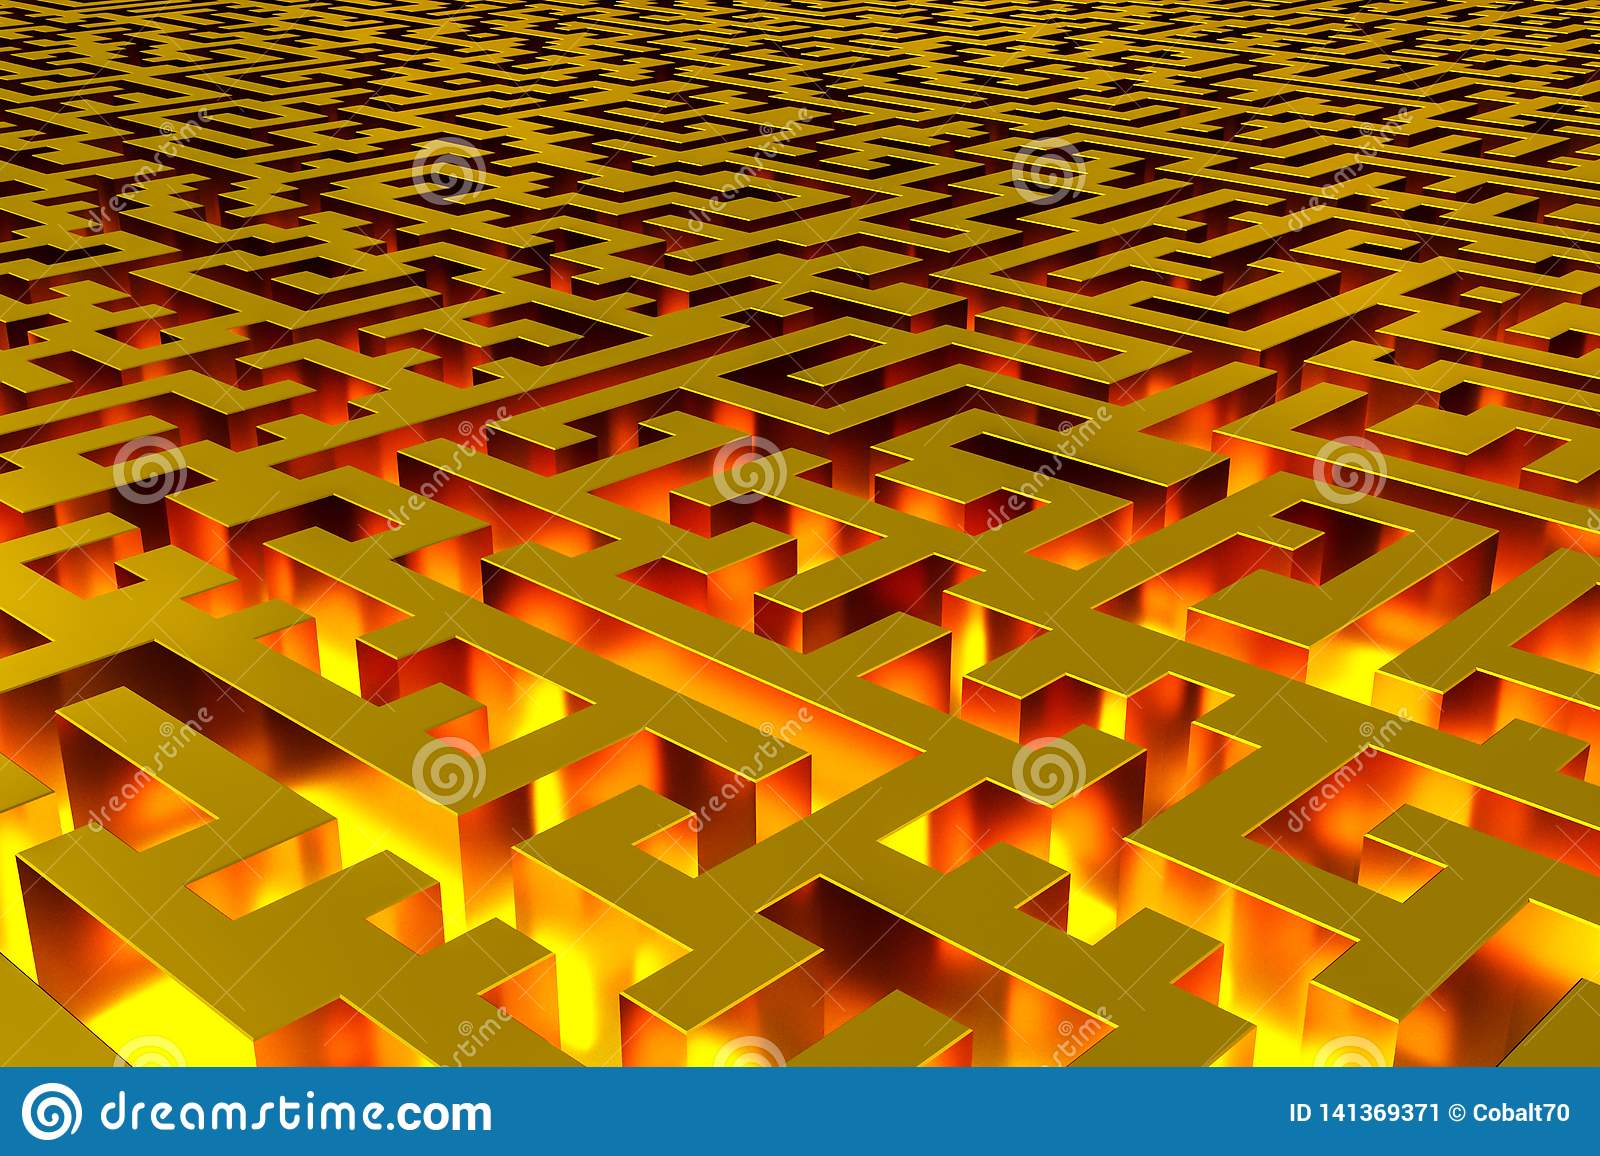 Three-dimensional infinite golden labyrinth illuminated from the inside. Perspective view of the labyrinth